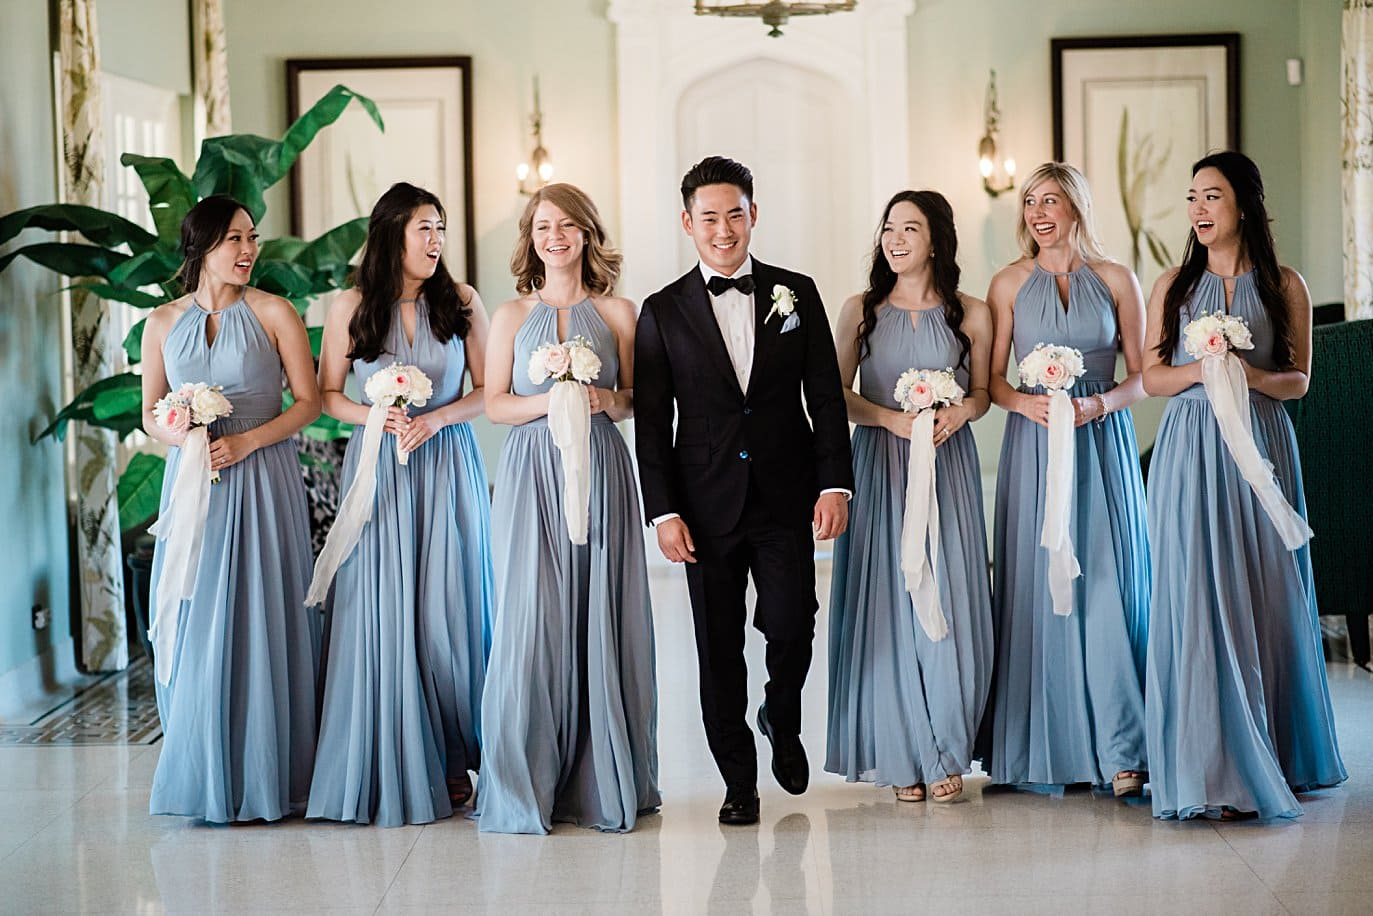 groom and bridesmaids in light blue bridesmaids dresses at Highlands Ranch Mansion wedding by Golden wedding photographer Jennie Crate